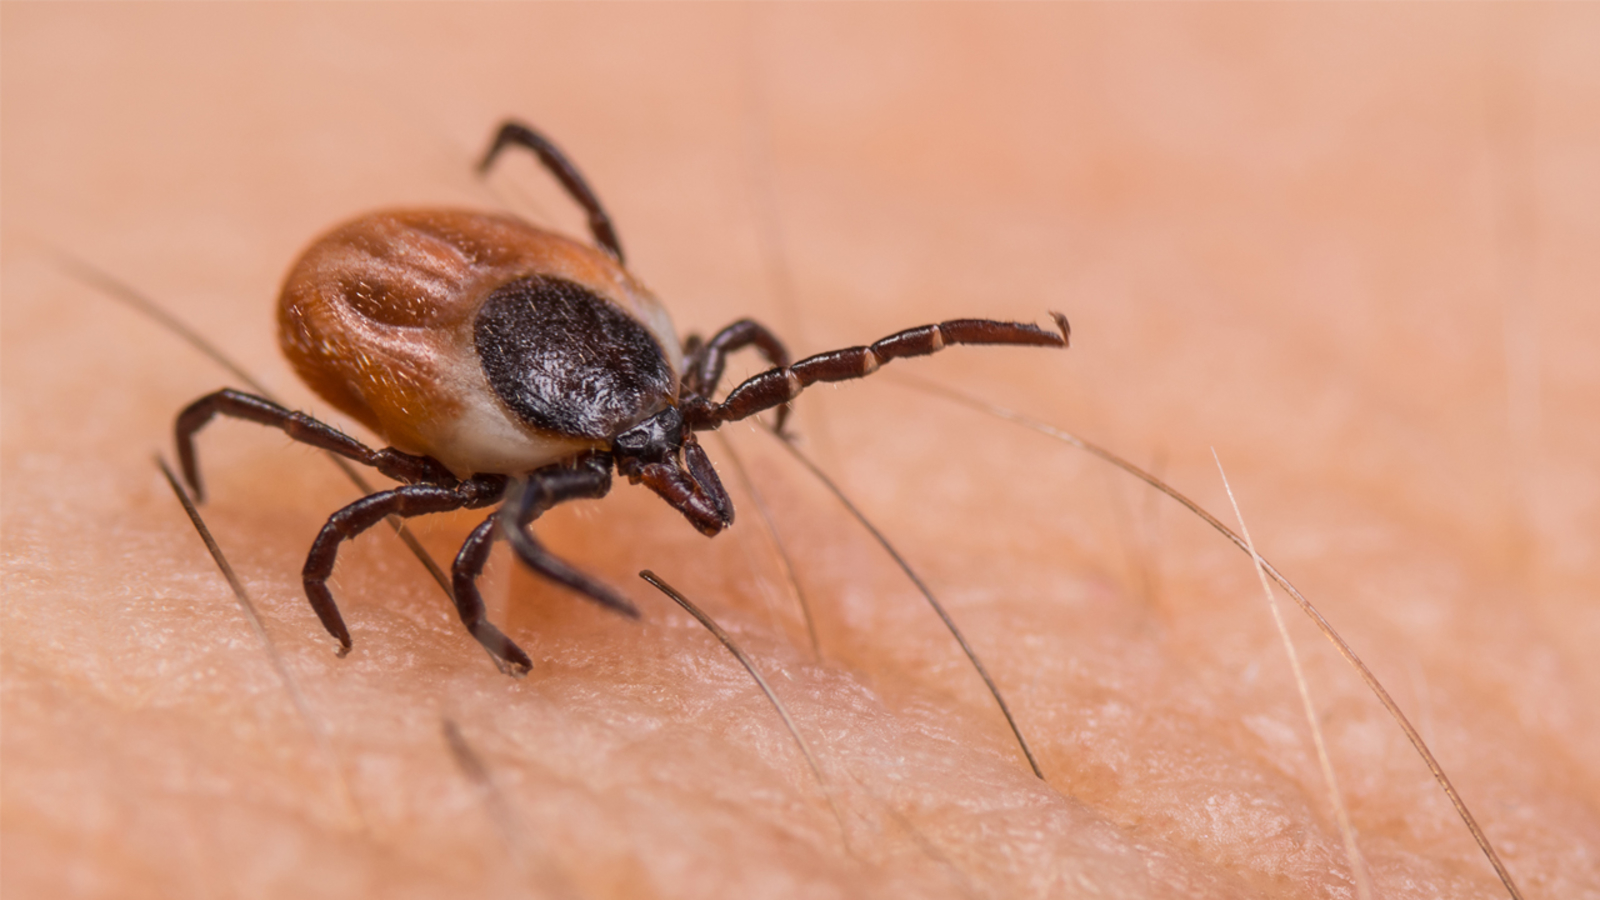 Tick season could be worse this year as we deal with COVID 19, experts say  - ABC7 Los Angeles